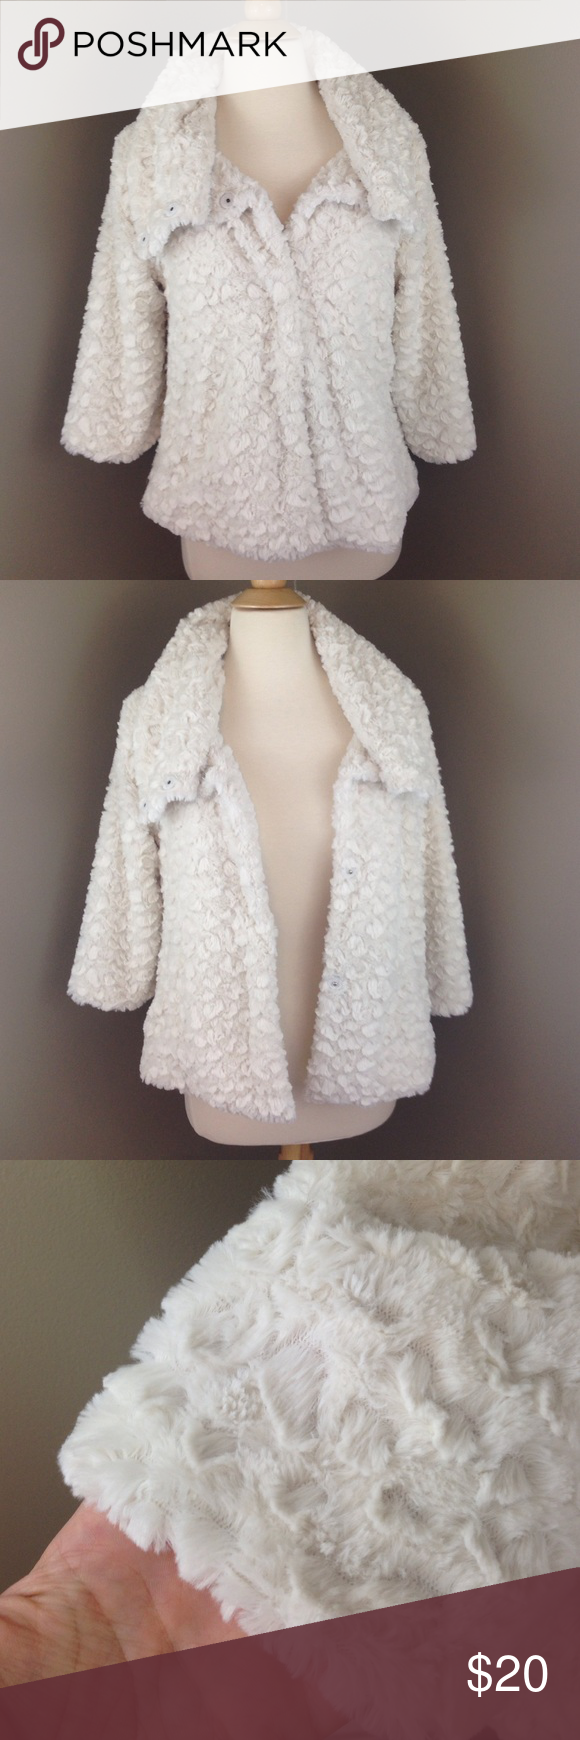 Soft Cream Jacket This is an adorable little jacket and it's so soft/comfy. It has 3/4 sleeves with pockets. Collar has several buttons and can be worn different ways. Never worn. I just have too many jackets. Actual size says S/M. unknown Jackets & Coats